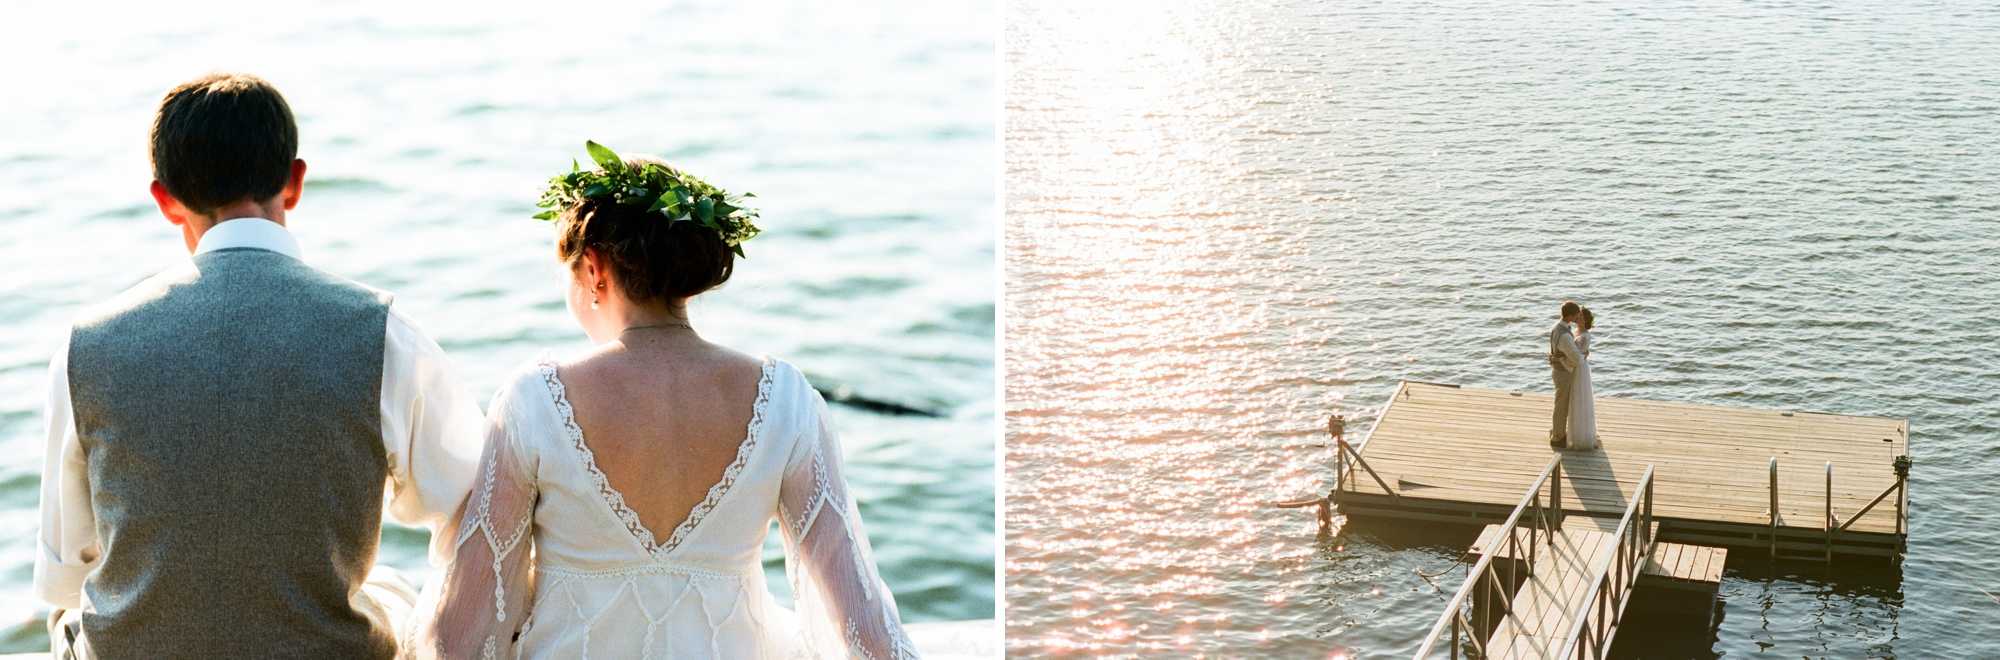 smith lake wedding_0023